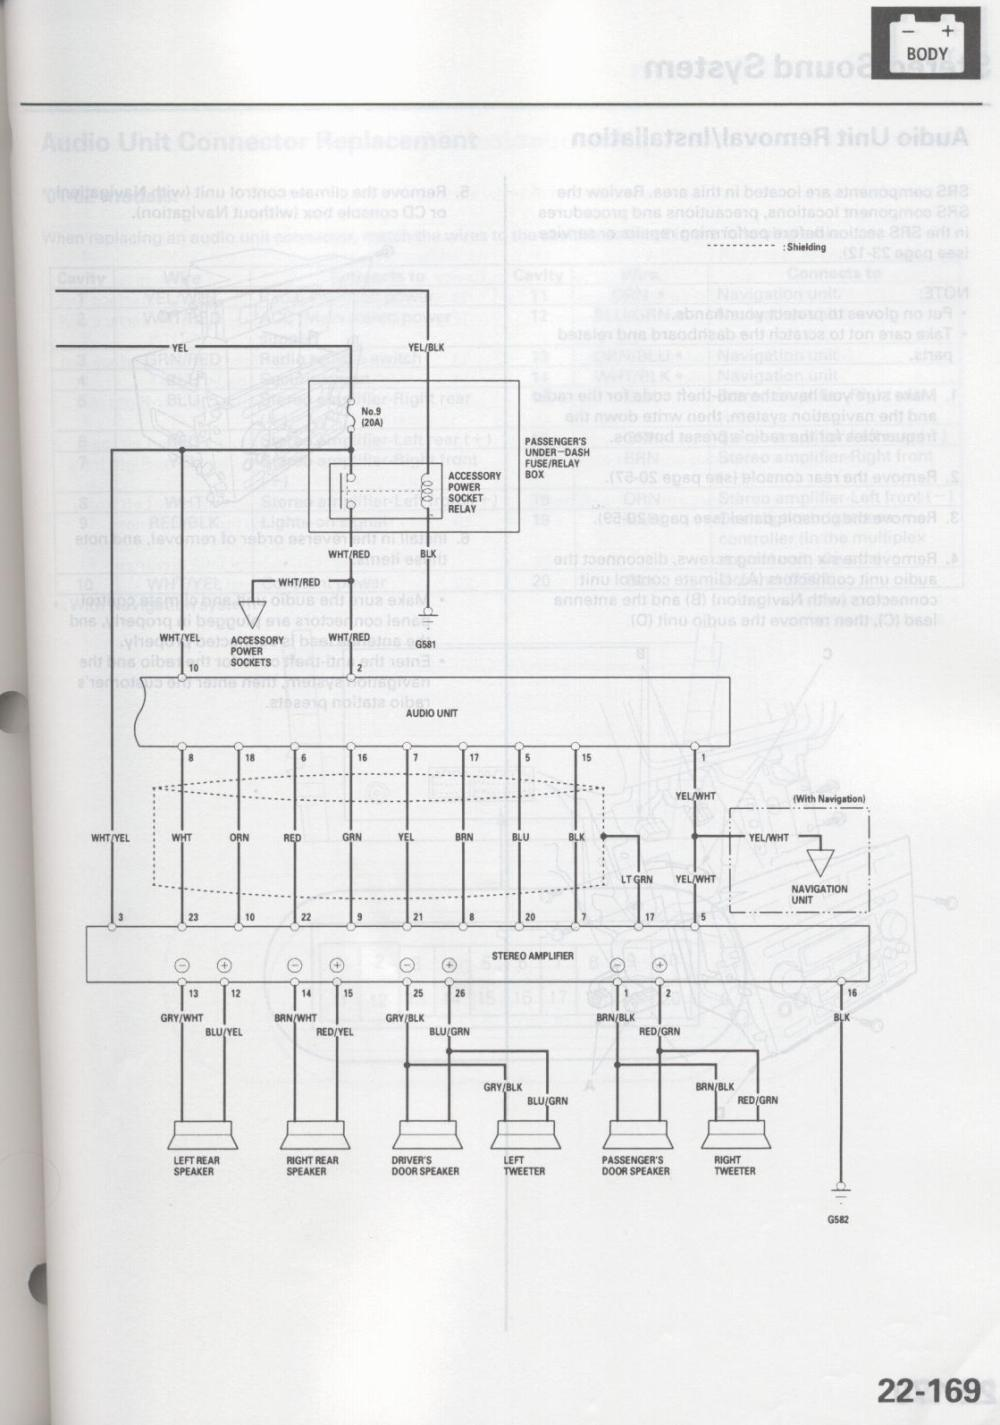 Wire Rsx Diagram Harness Radio 02 Acura Wiring Library 2002 Tl Diagrams Http Nealgravattcom Img Wiringdiagram2